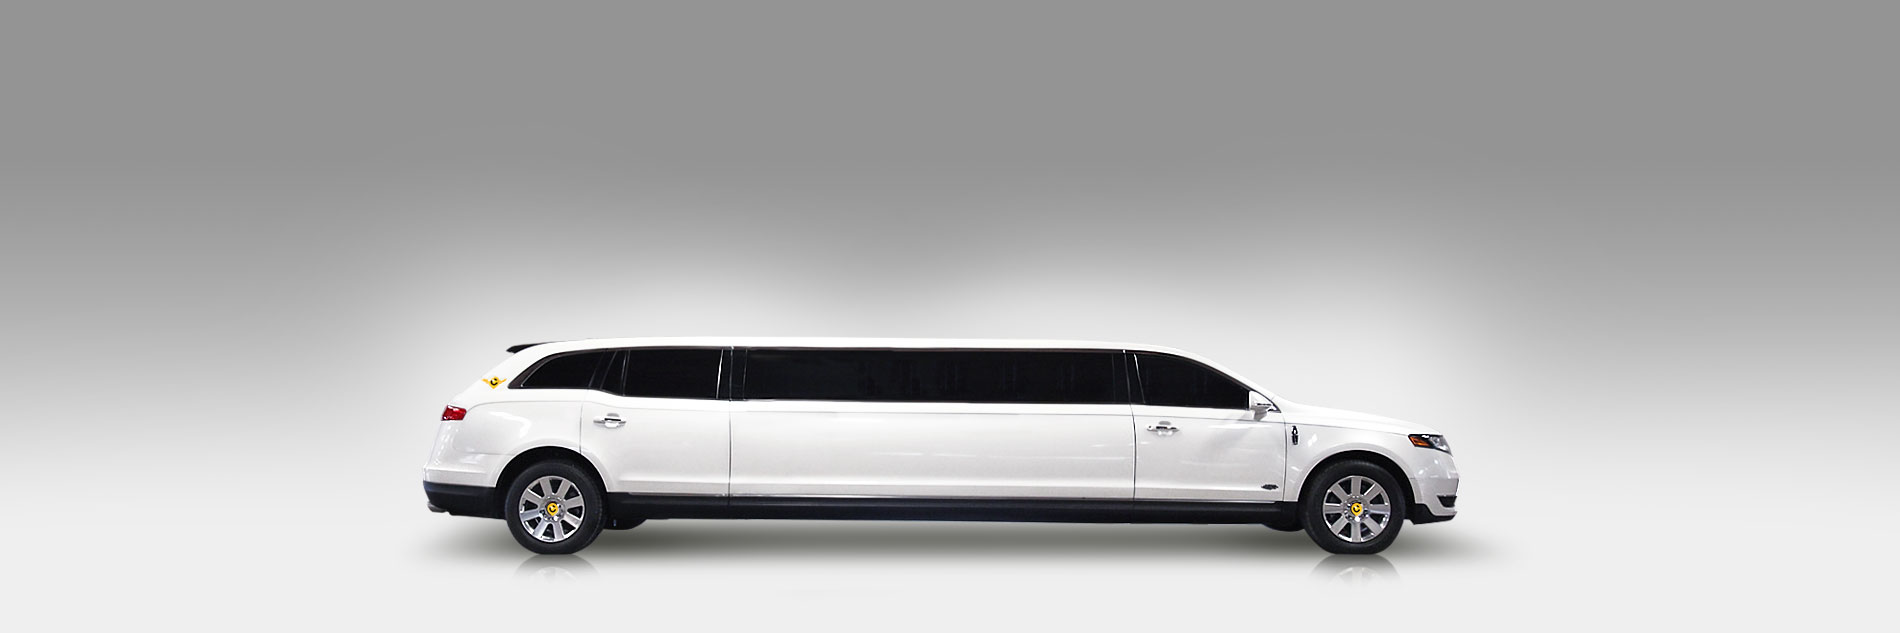 Lincoln Stretch Limo White - Colony Limo Service Houston